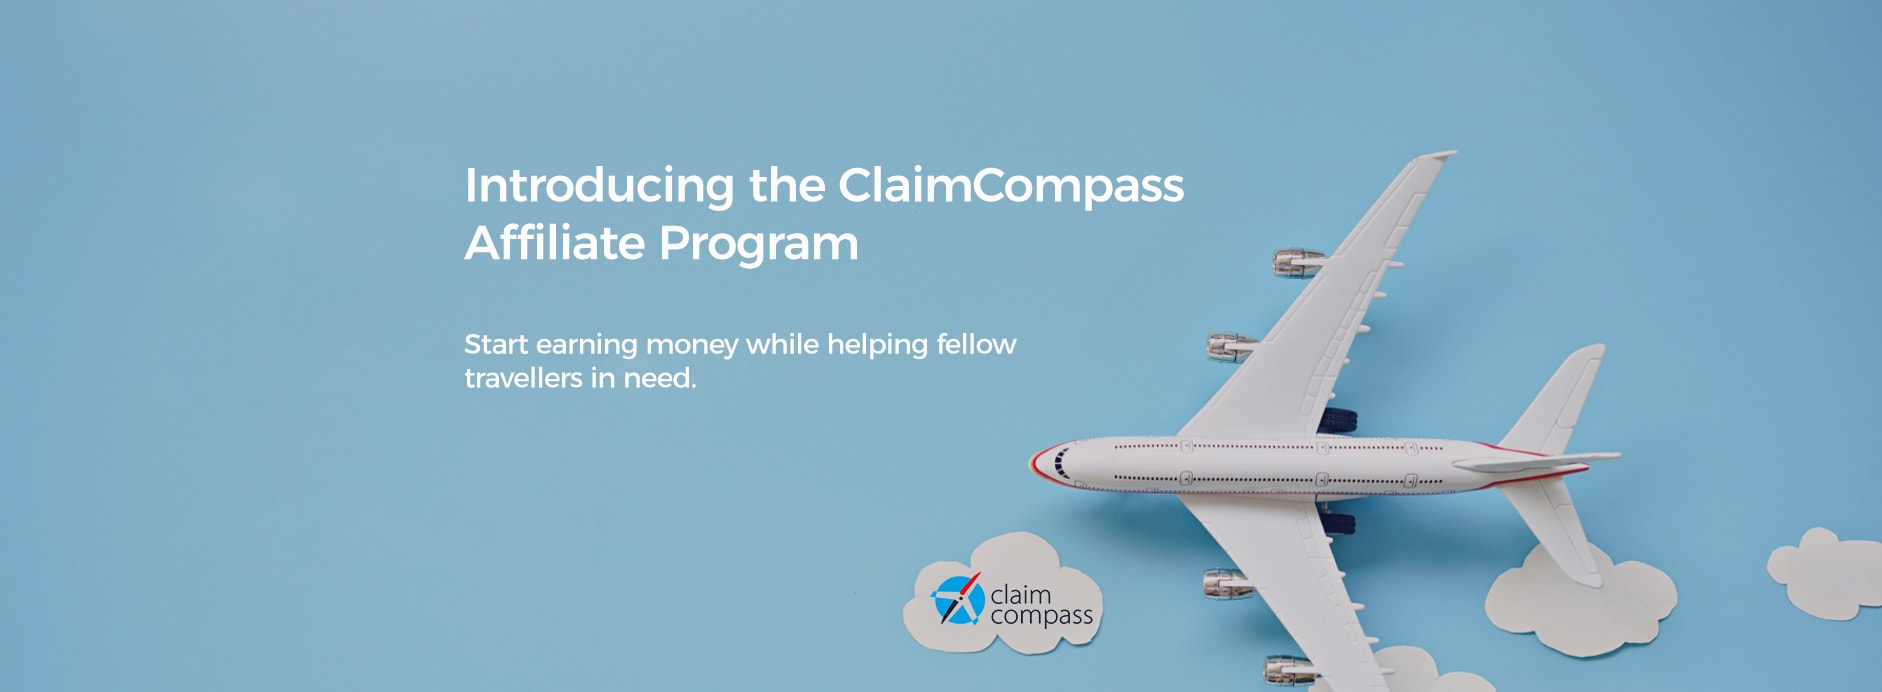 Introducing the ClaimCompass Affiliate Partnership Program